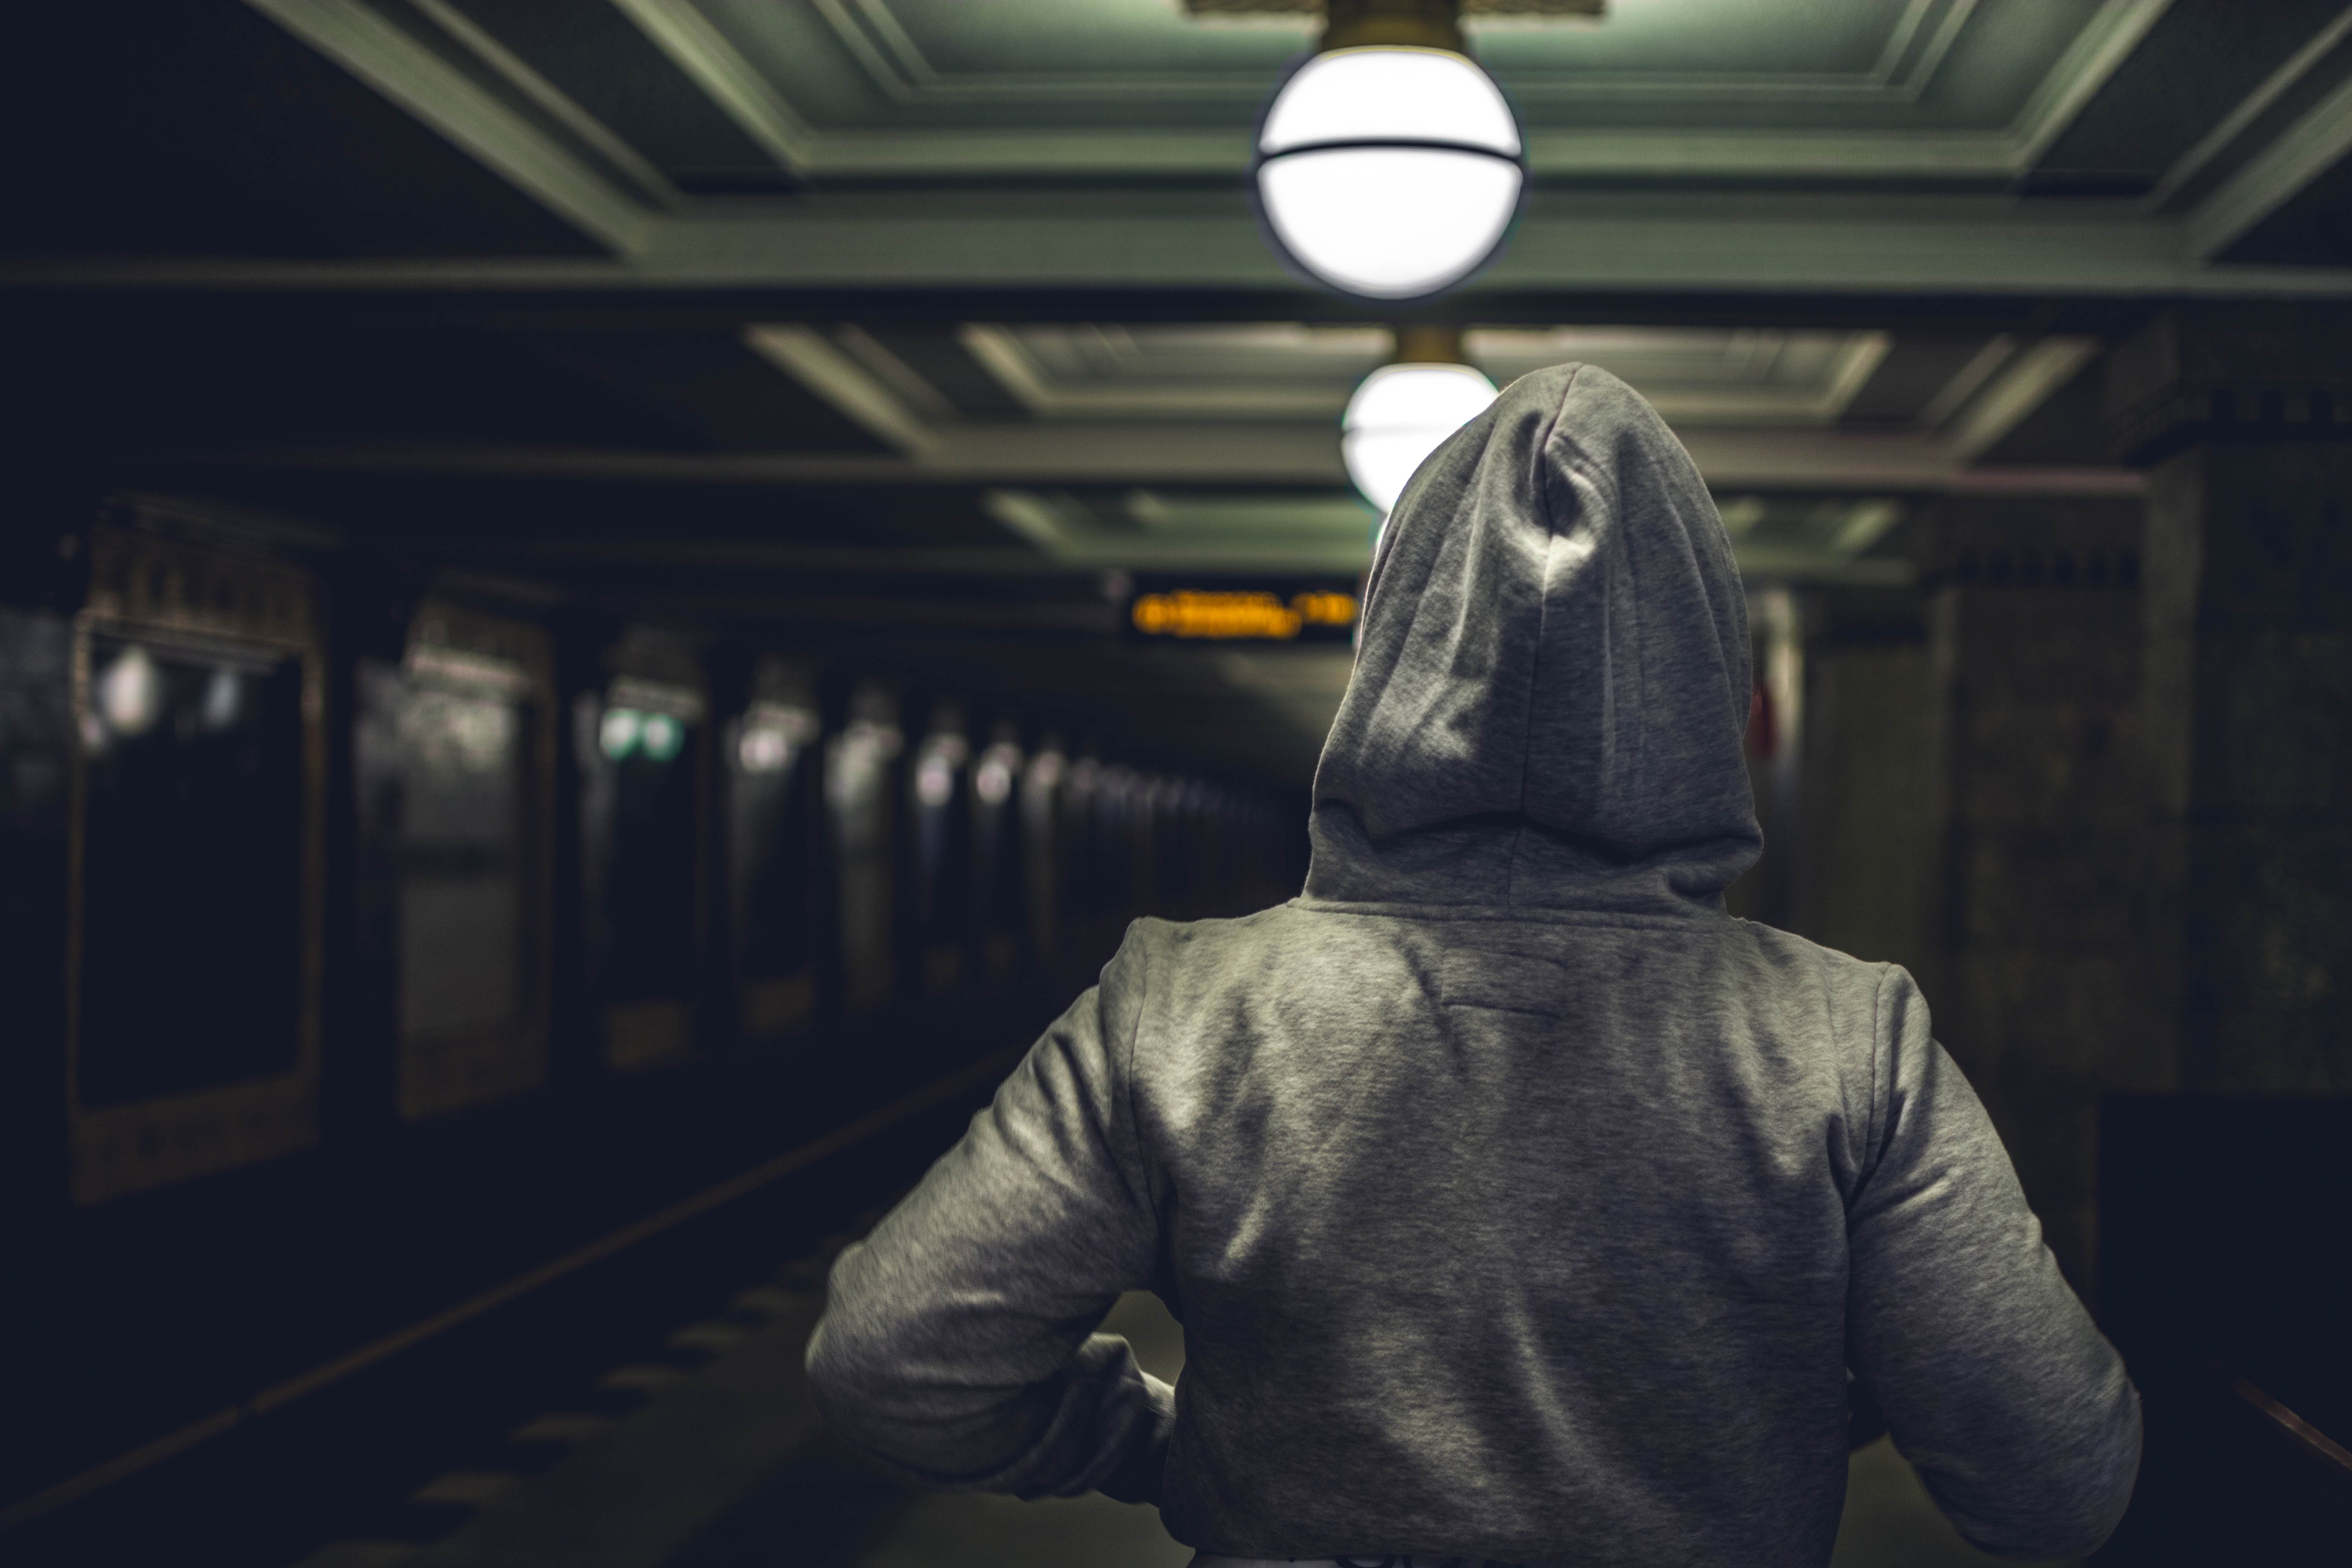 Person Wearing Gray Hooded Jacket in Train Station